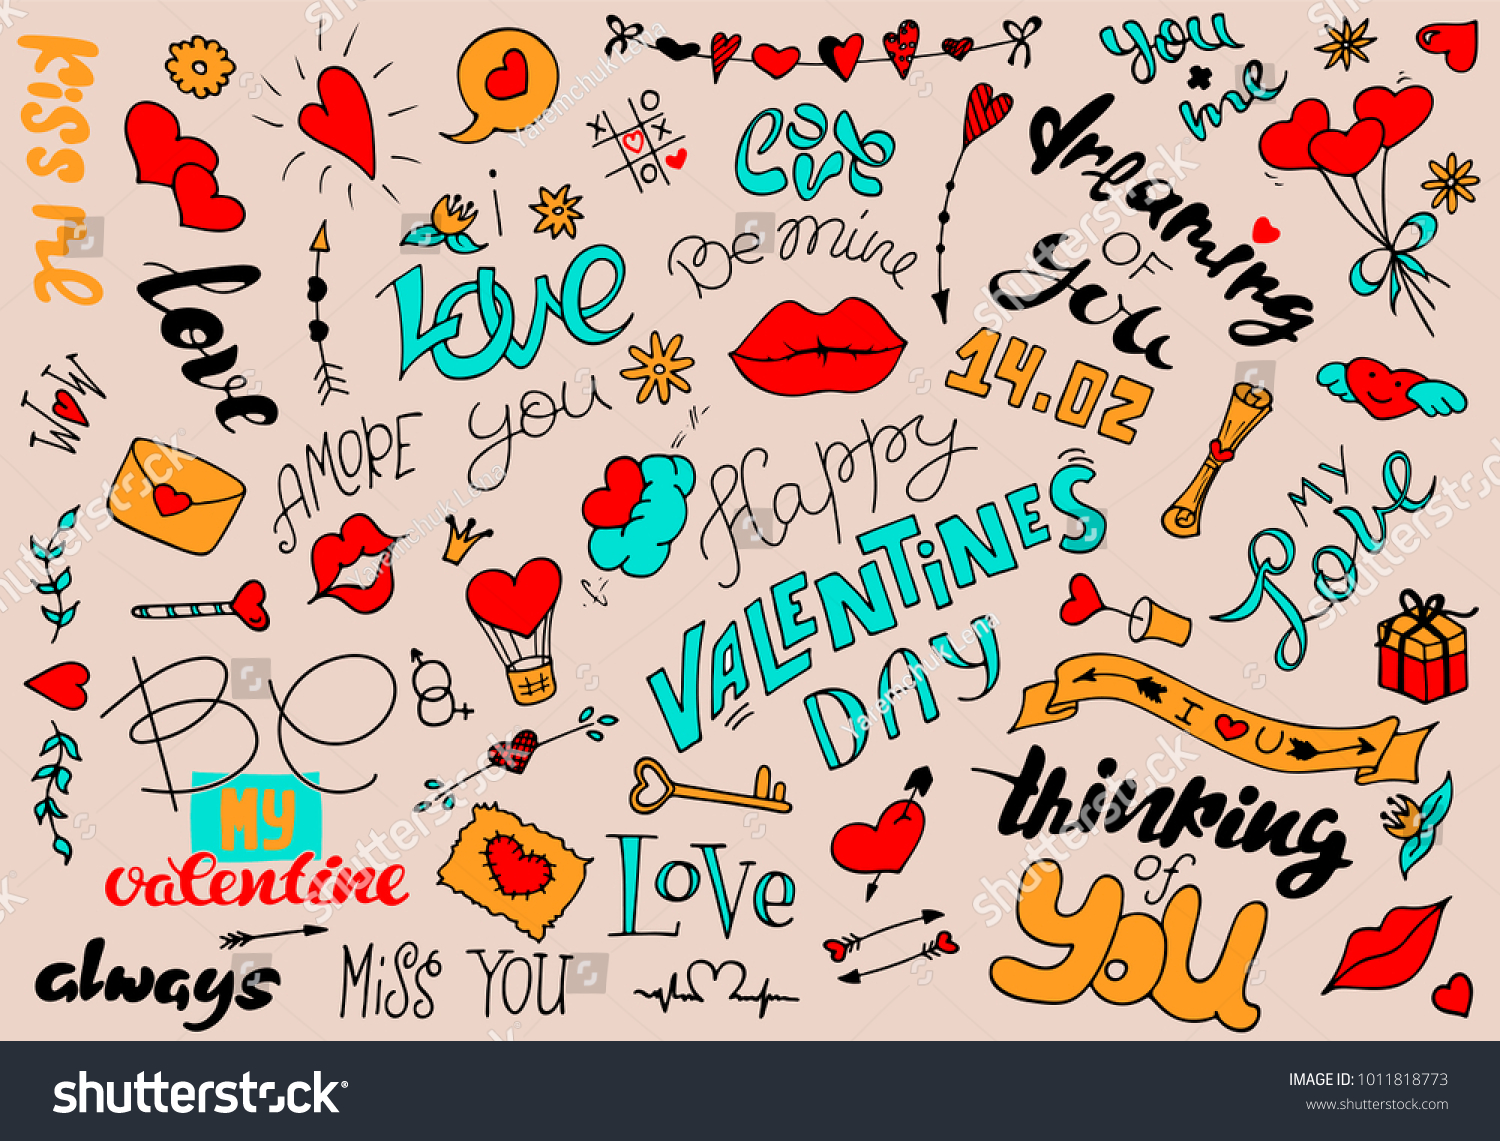 A Set Of Simple Drawings In Doodle Style For Valentineu0027s Day. Collection Of  Elements For